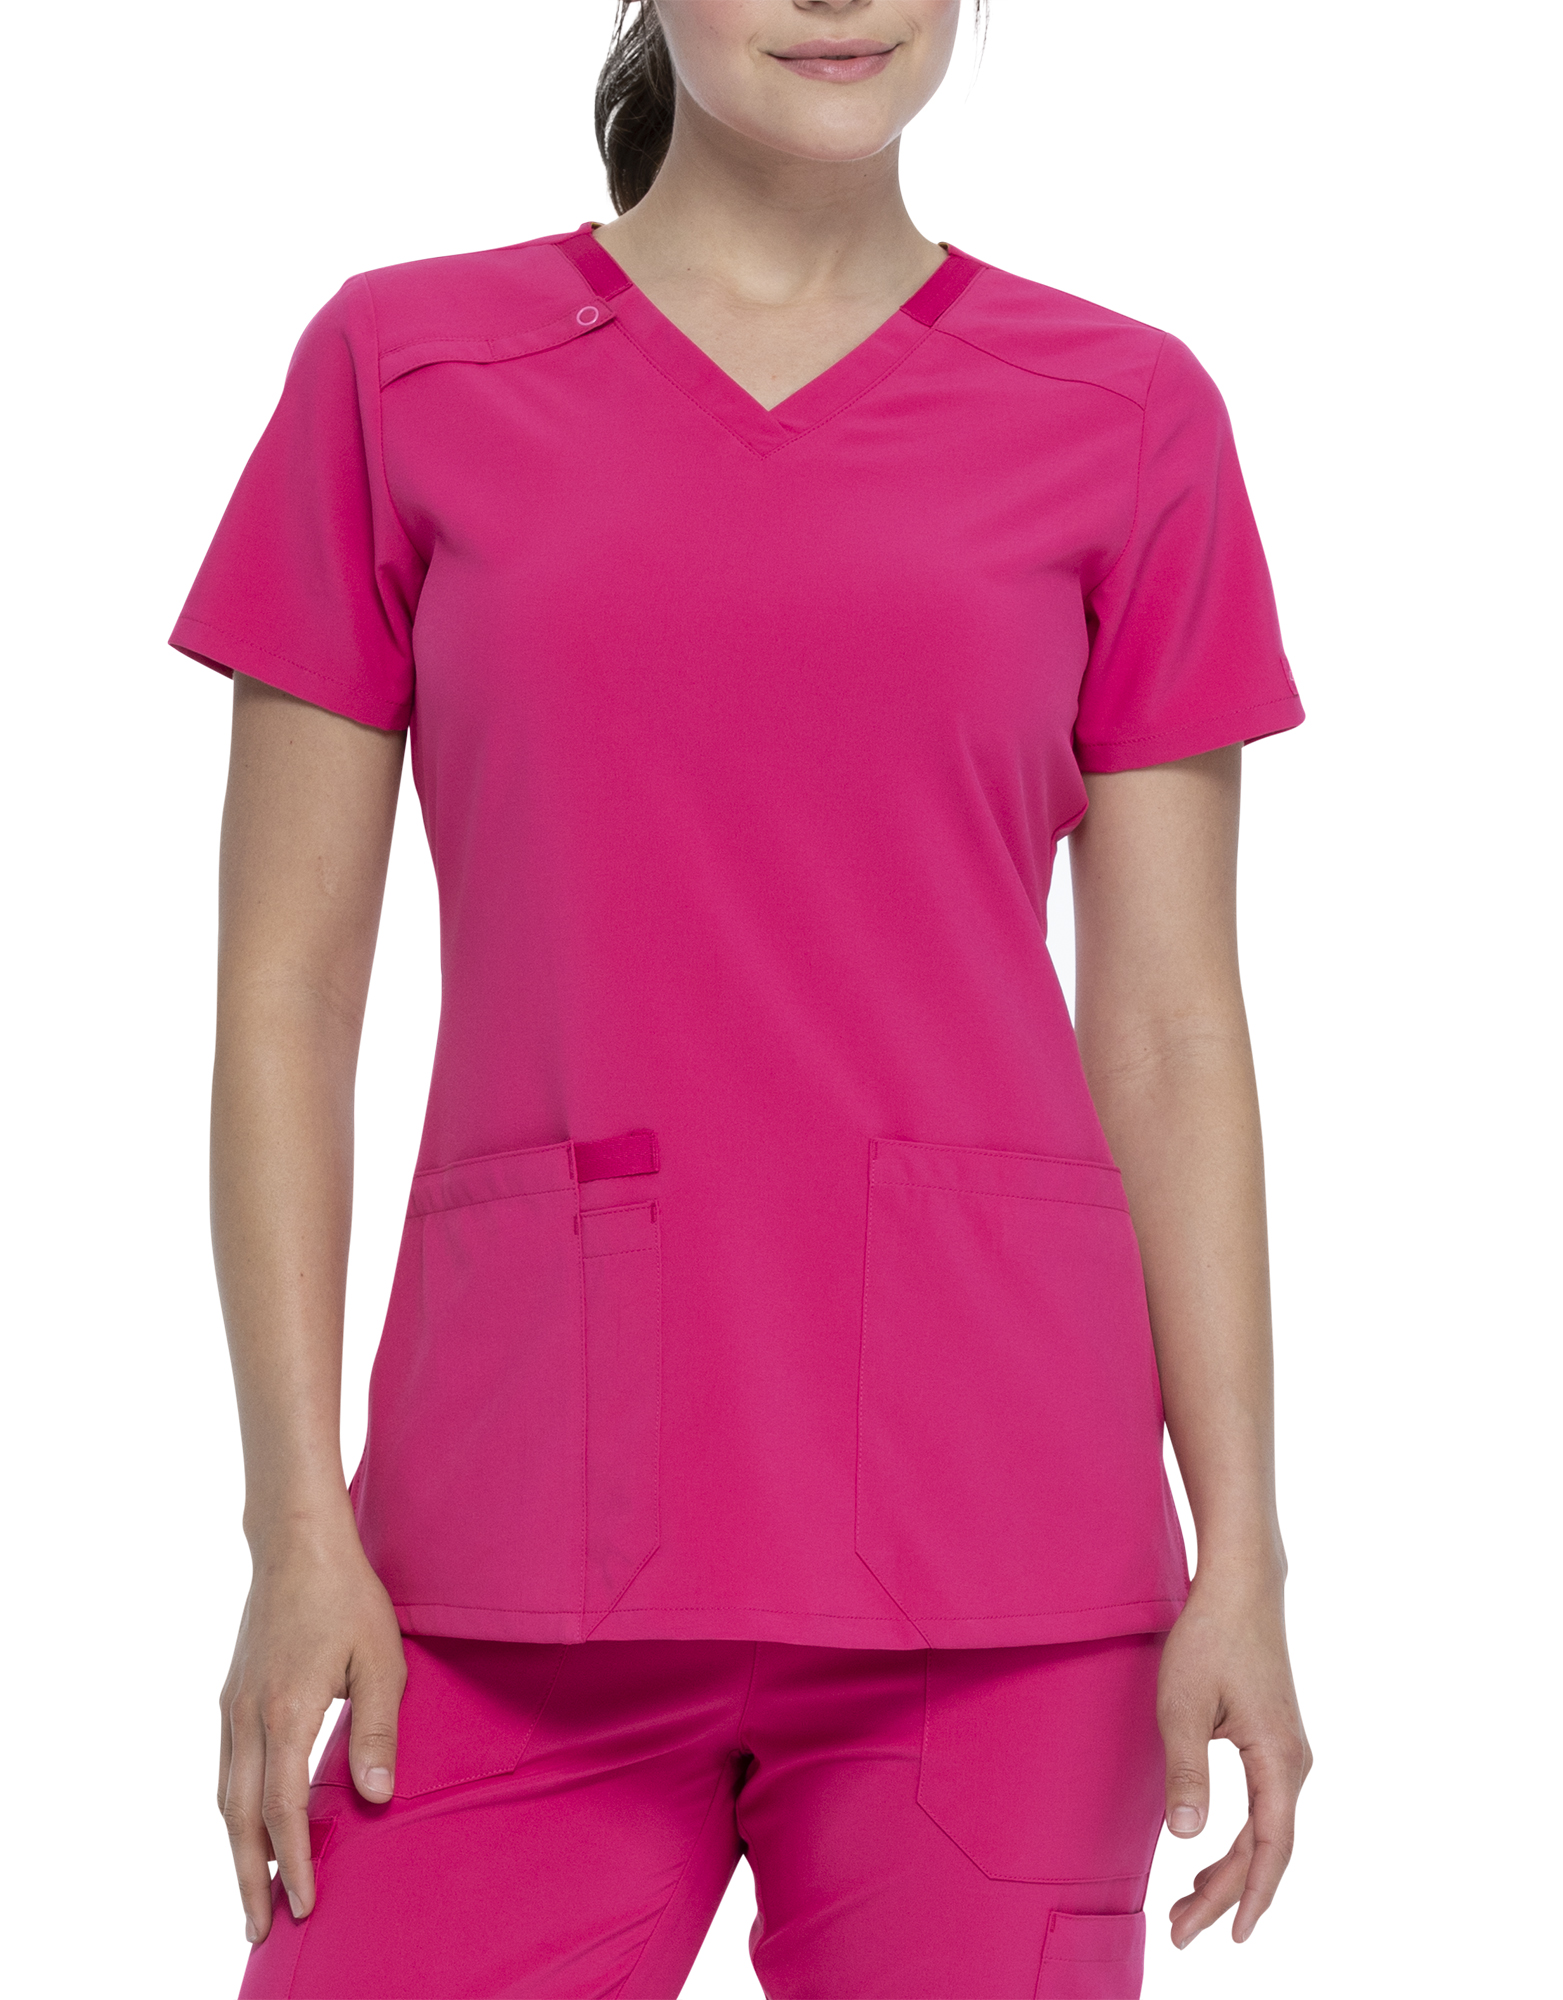 Women's EDS Essentials V-Neck Scrub Top with Pen Slot - Hot Pink (HPK)